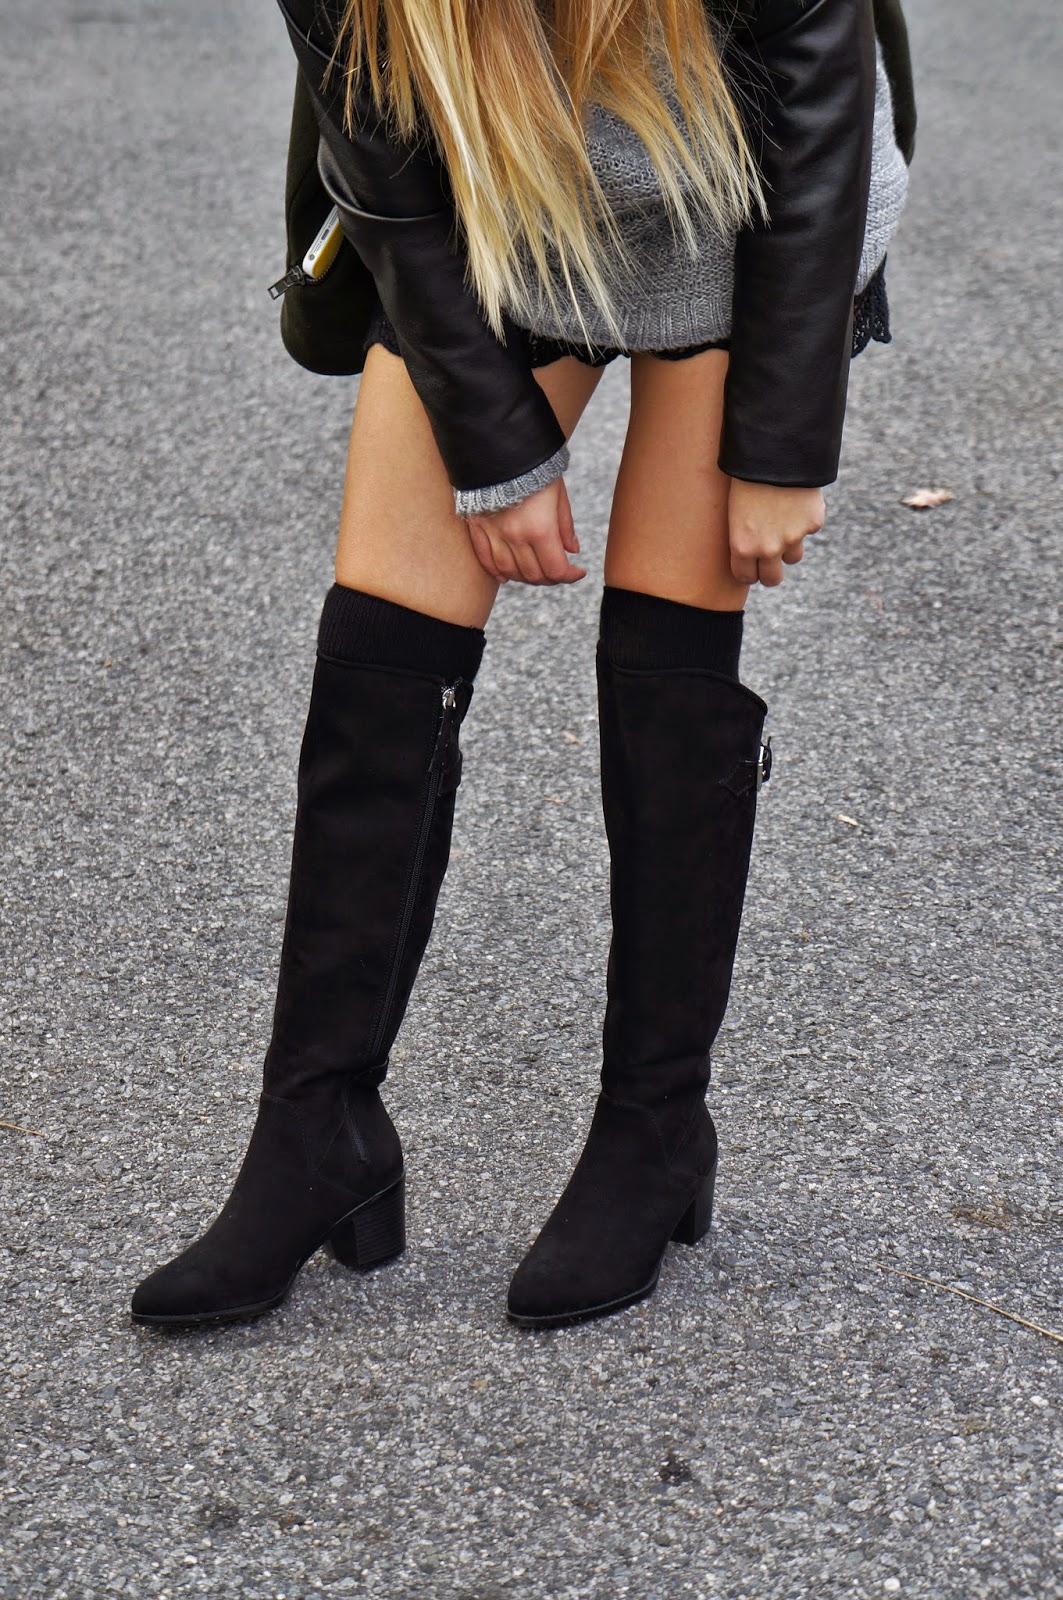 Shenaniganska: How to make your boots look longer